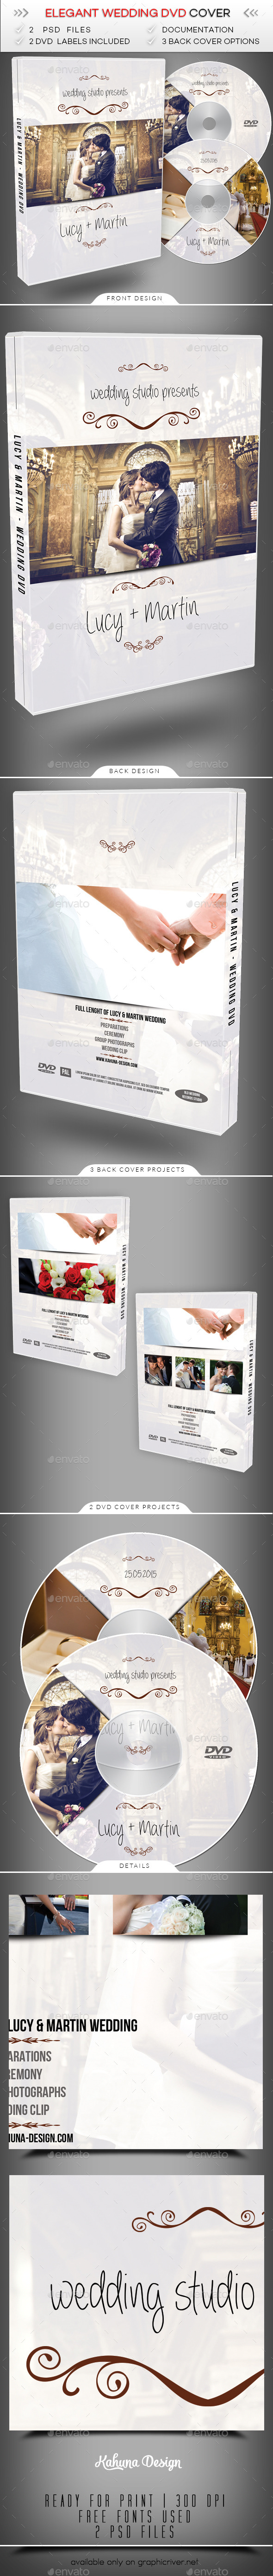 Wedding DVD / Blu Ray Cover 2 | Wedding, Cd cover design and ...